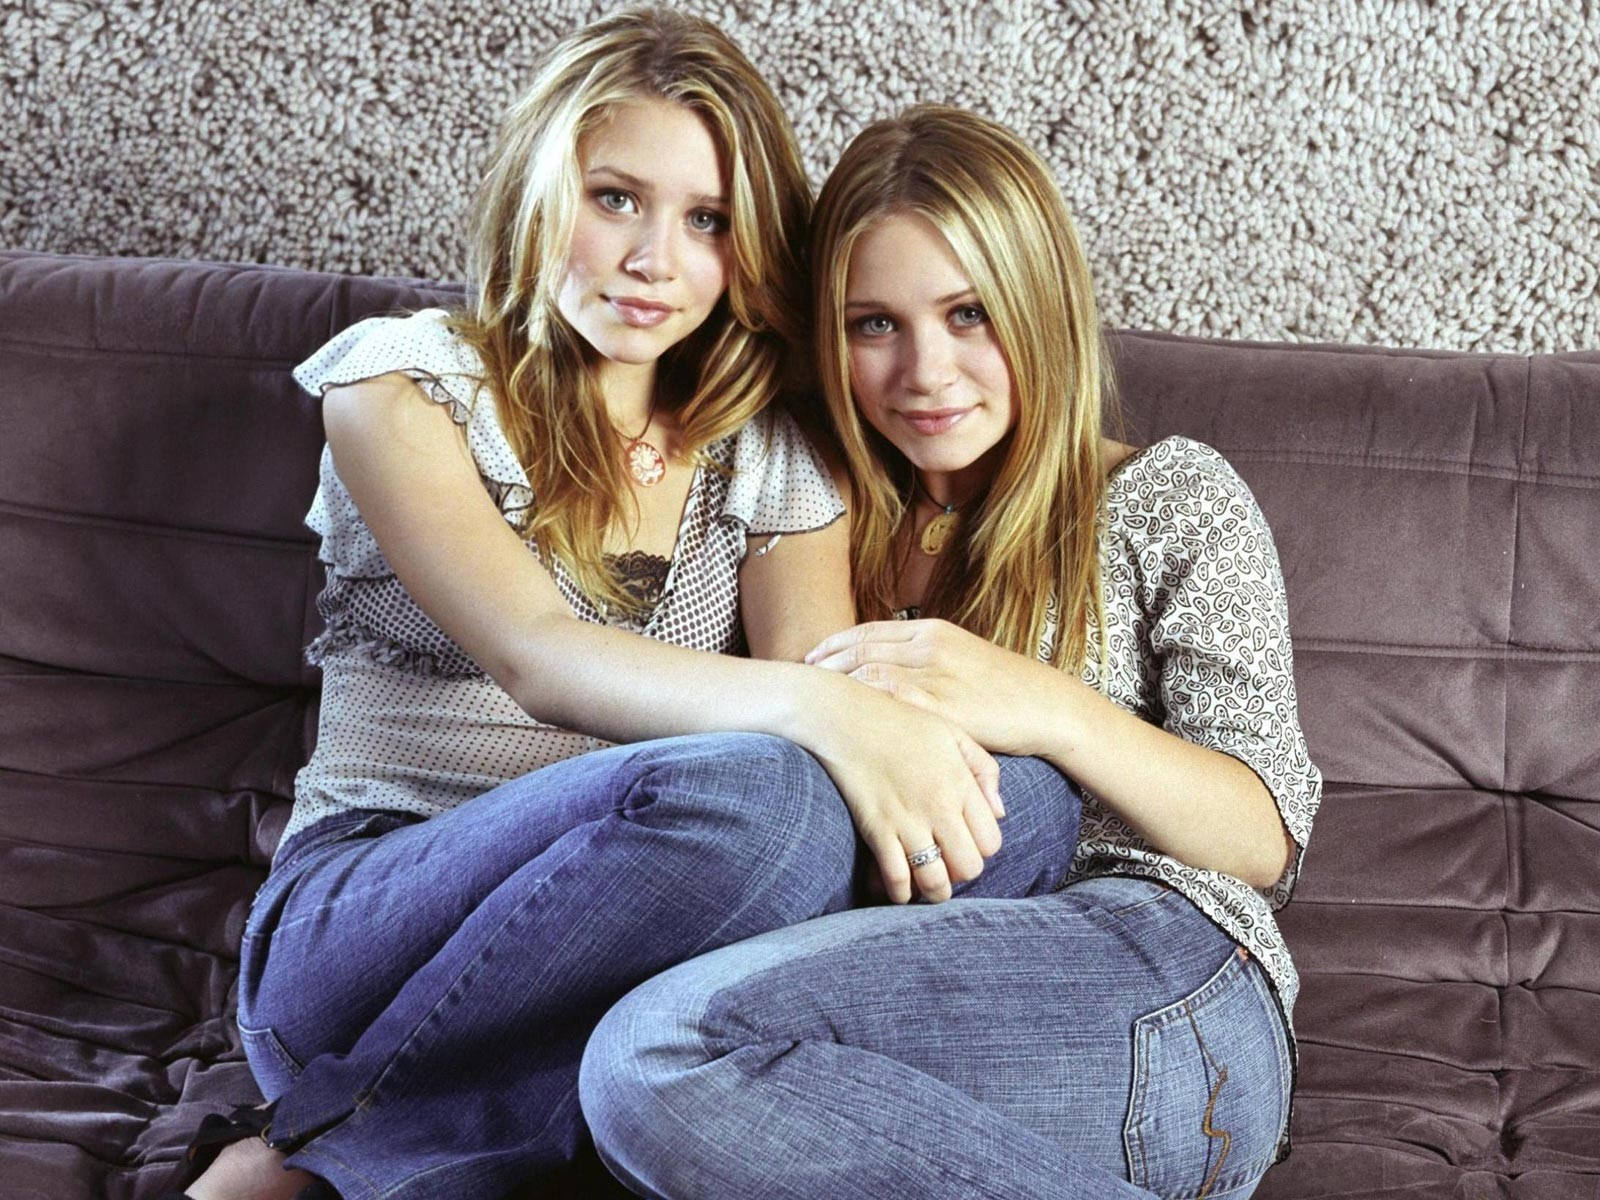 ... olsen-twins-hd-wallpapers ...